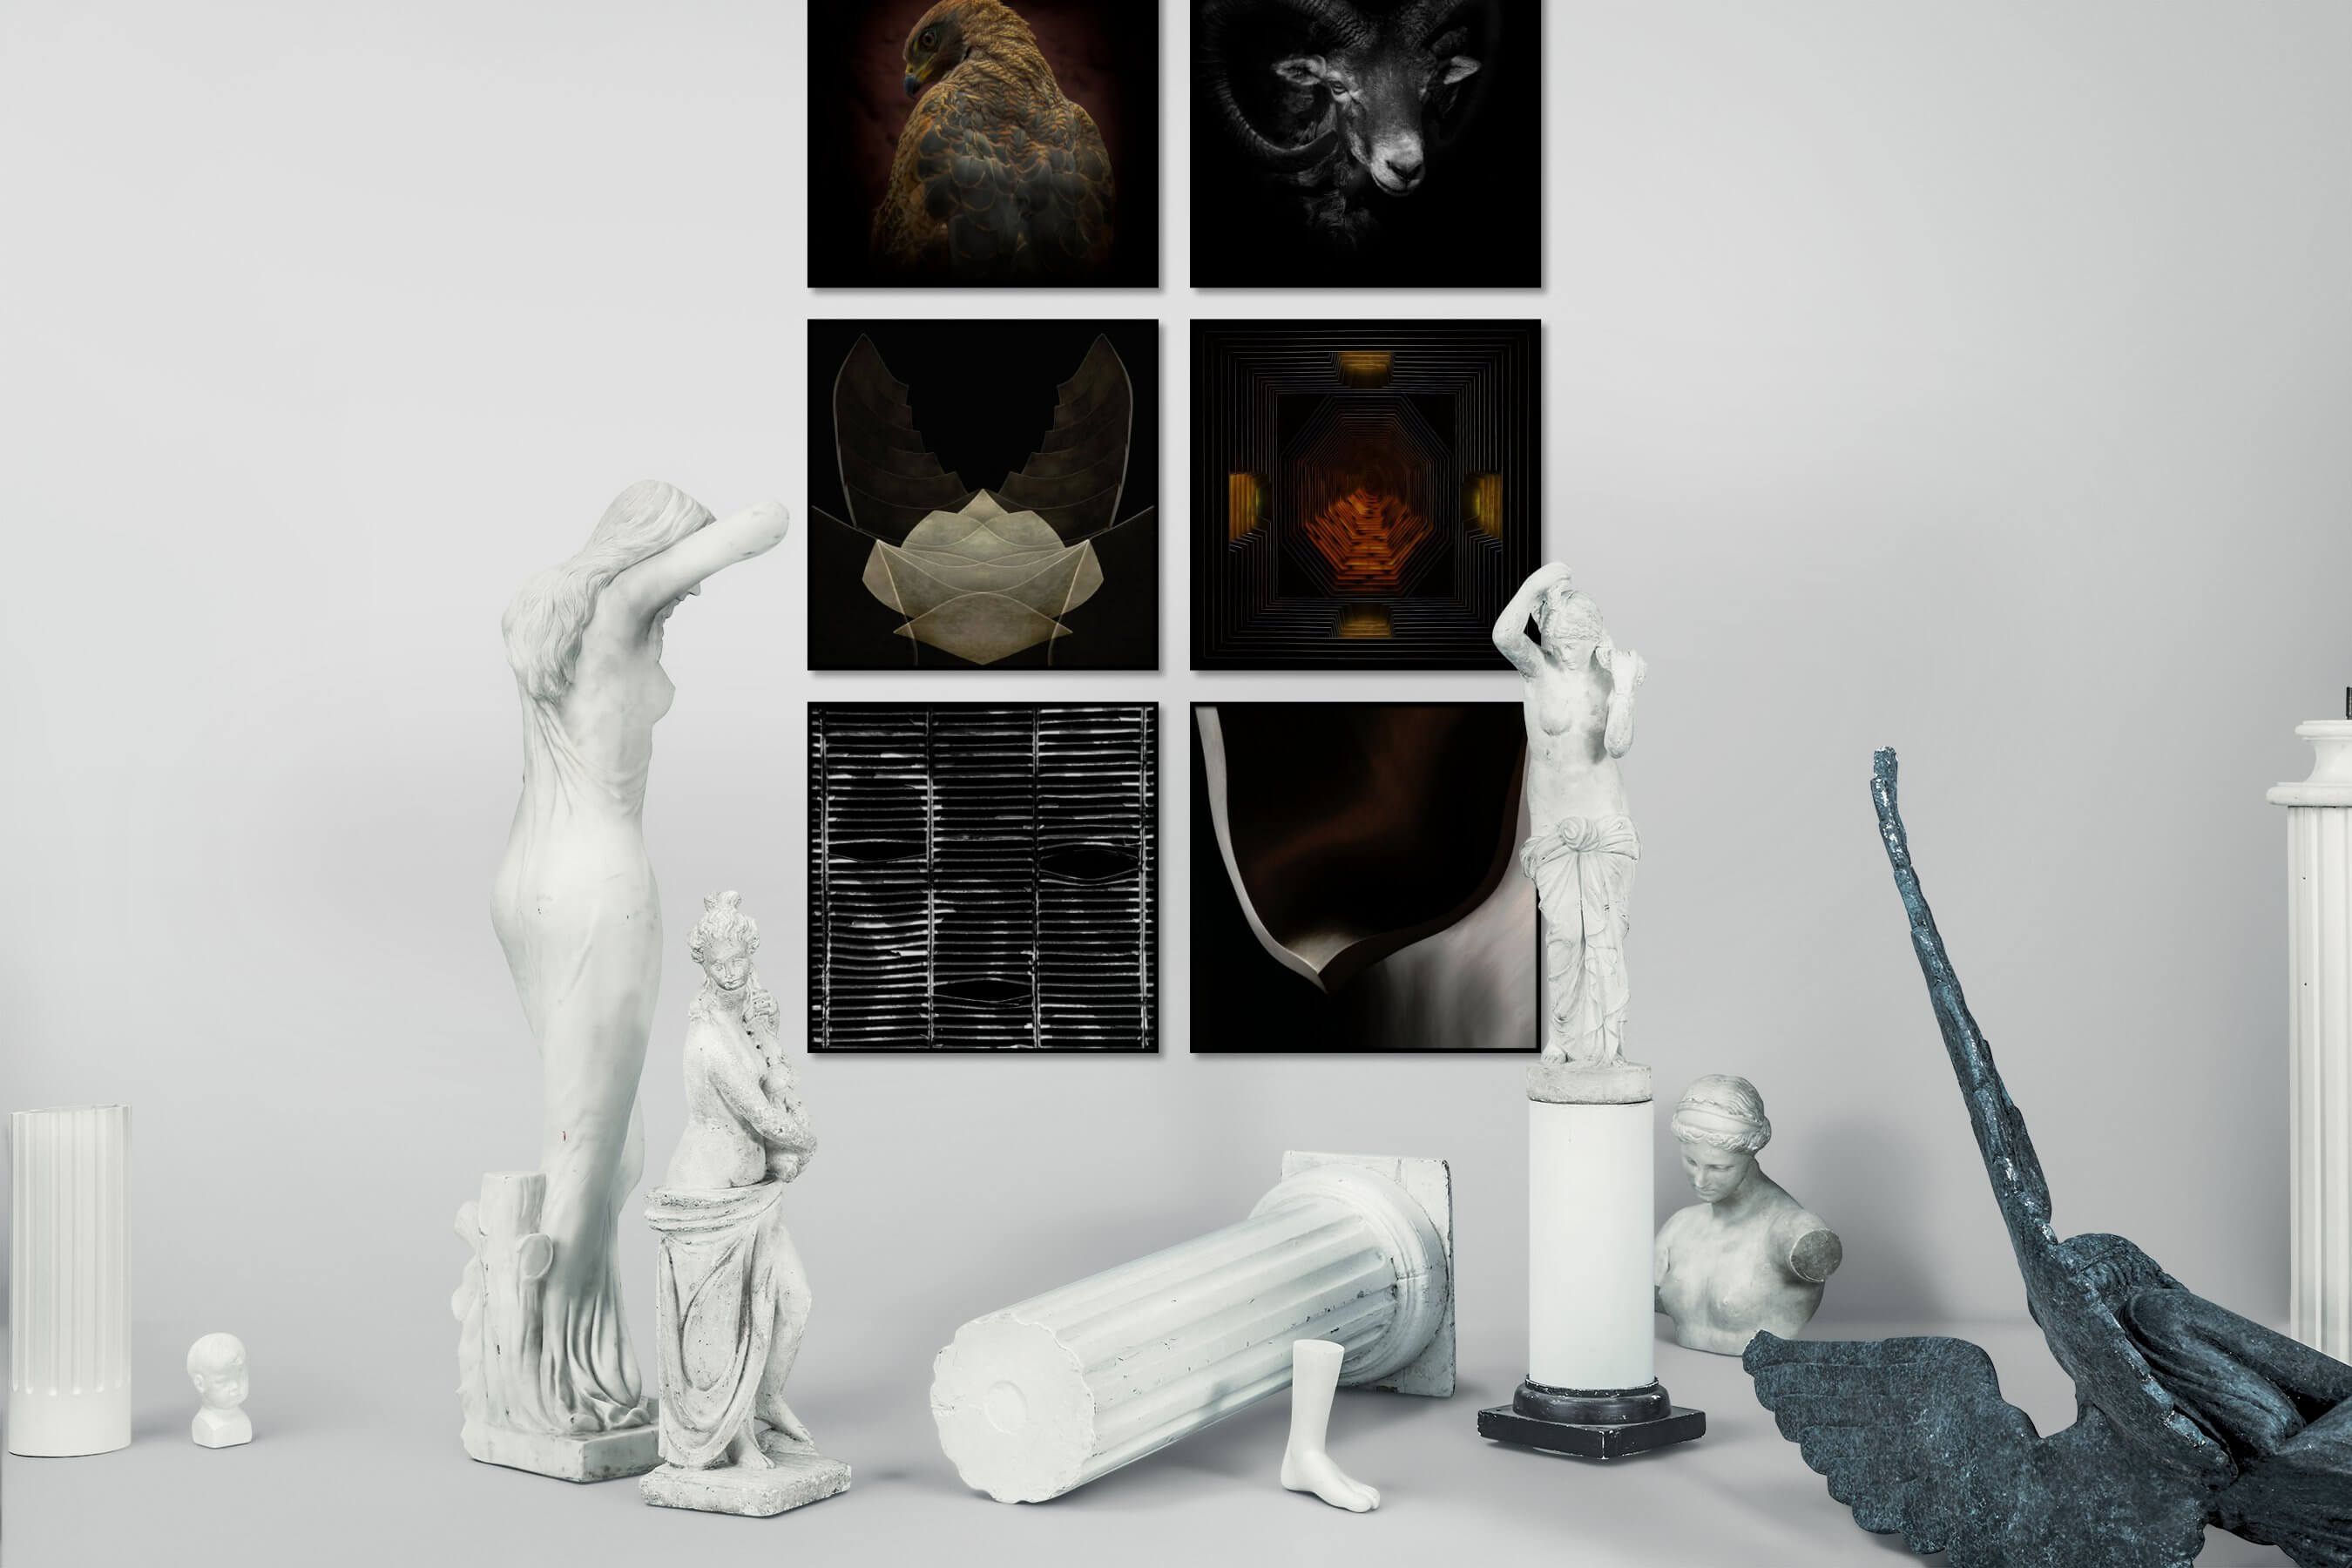 Gallery wall idea with six framed pictures arranged on a wall depicting Dark Tones, Animals, Black & White, For the Minimalist, For the Moderate, and For the Maximalist